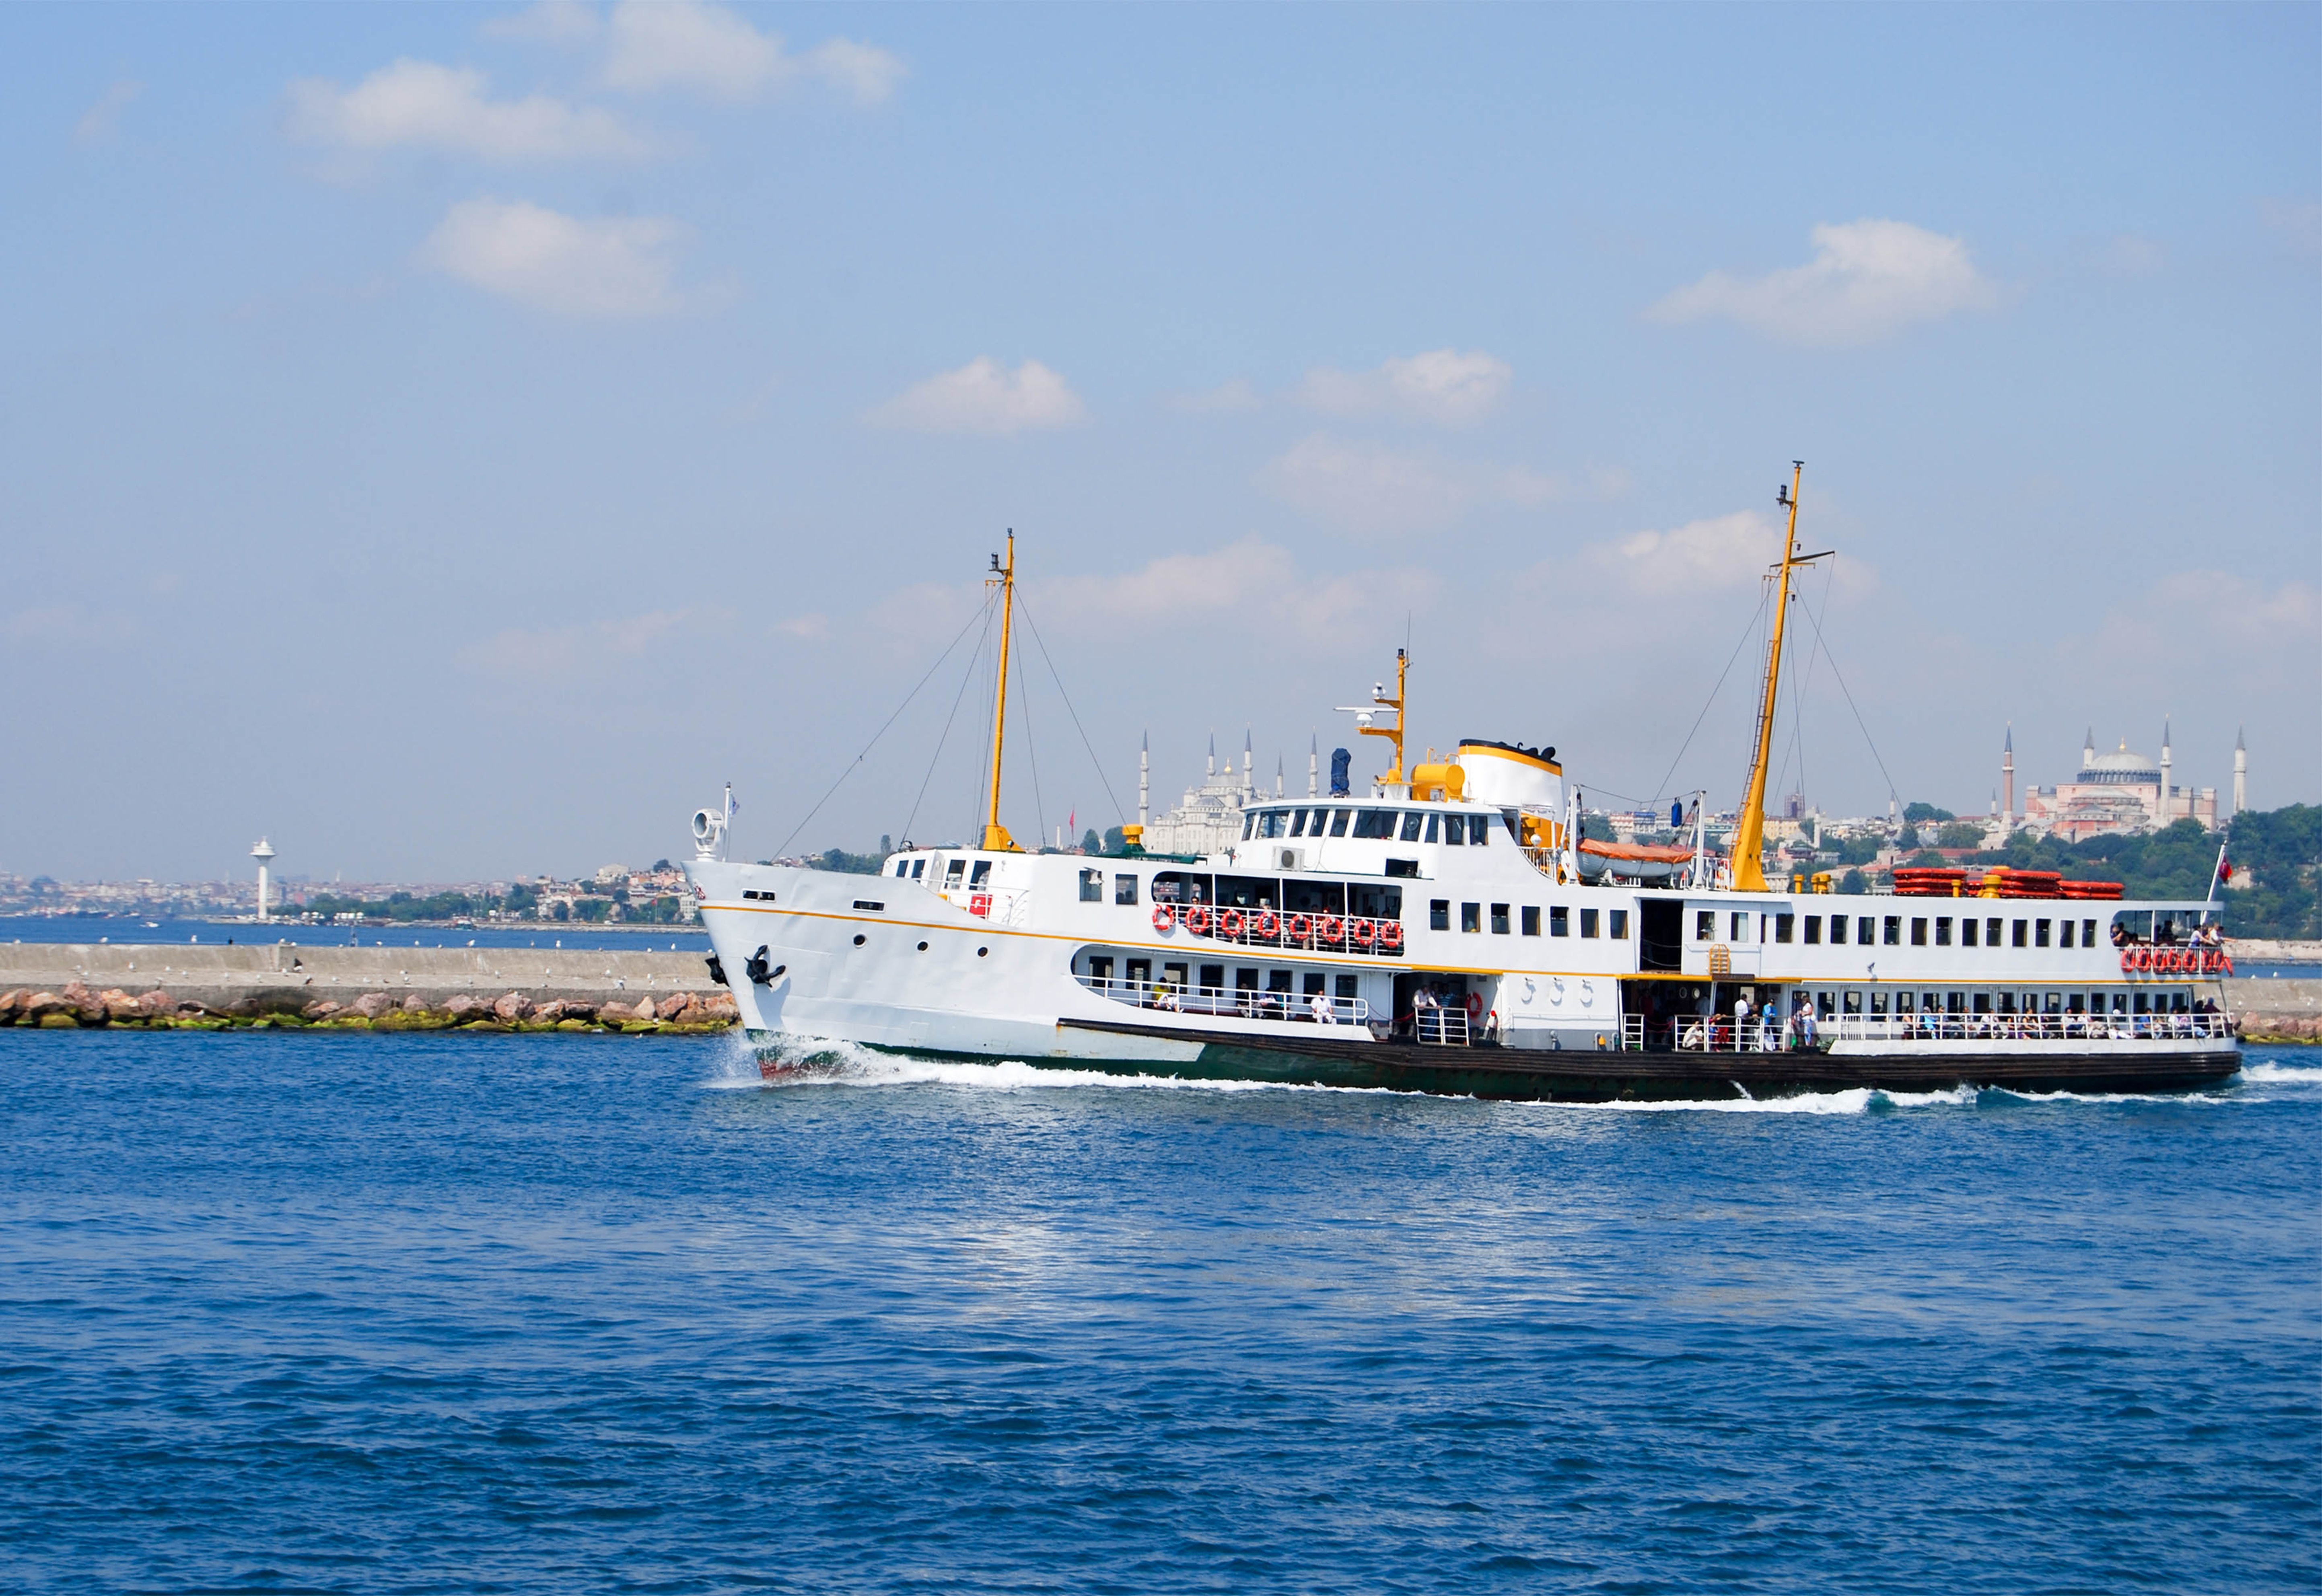 ENJOY TURKEY + BOSPHORUS CRUISE (LEBARAN PERIOD)